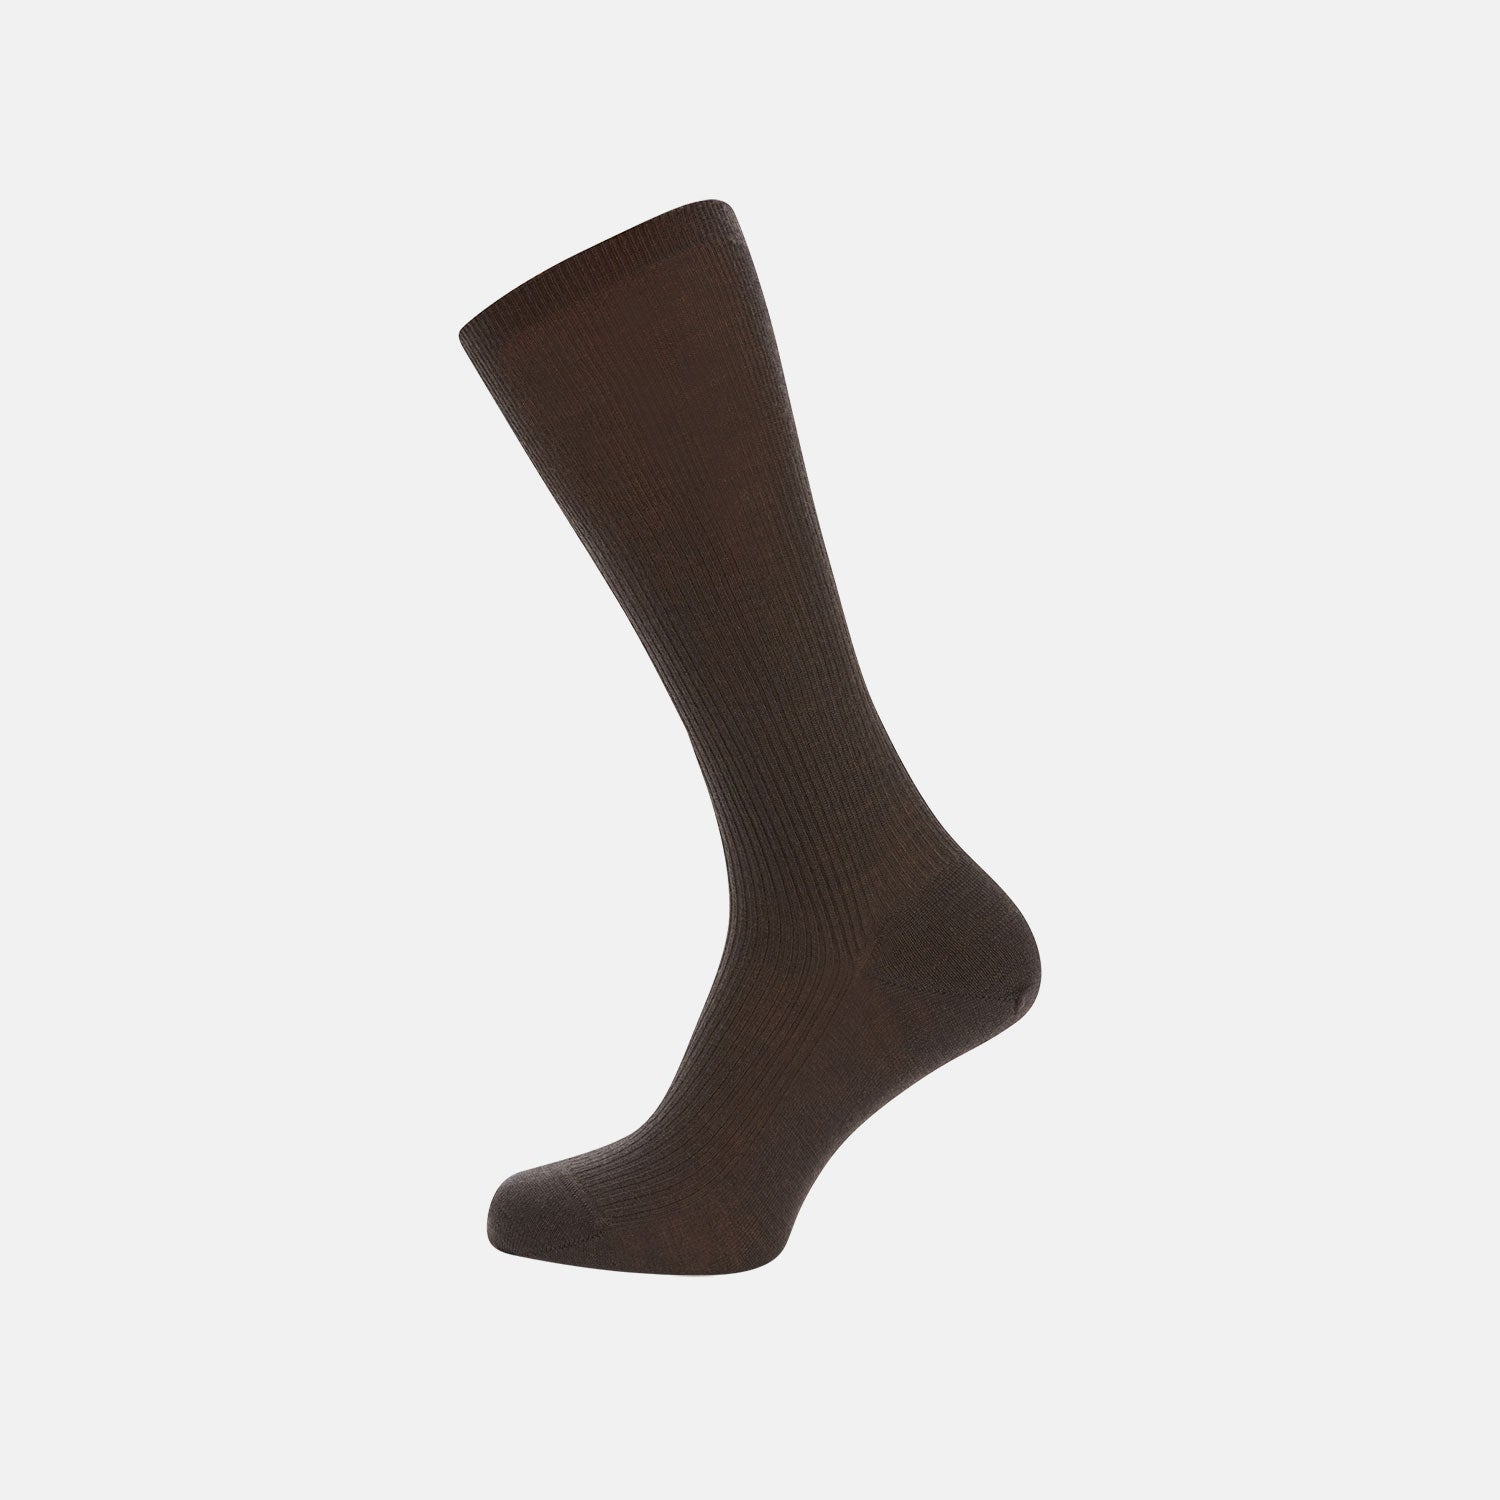 Chocolate Brown Mid-Length Merino Wool Socks